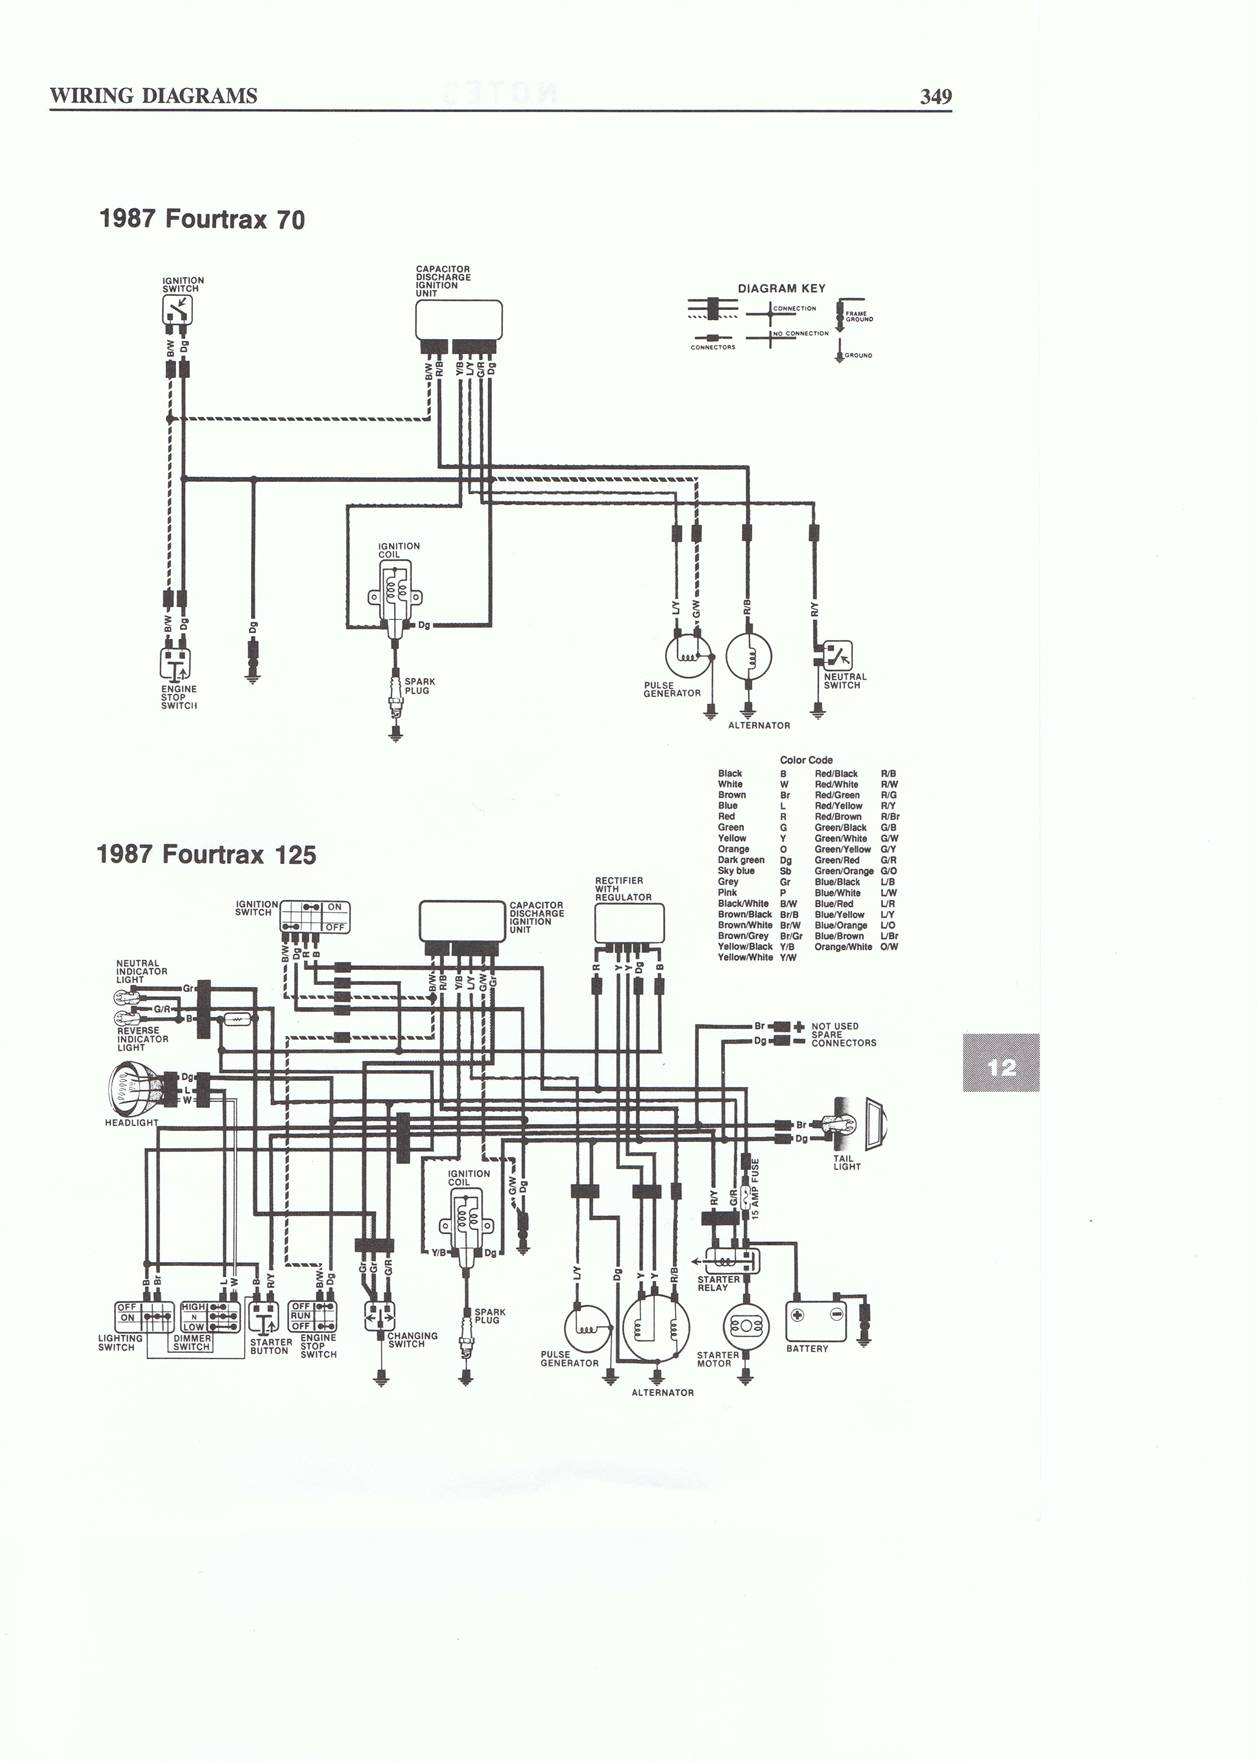 gy6 engine wiring diagram?t=1398725710 gy6 engine wiring diagram  at virtualis.co